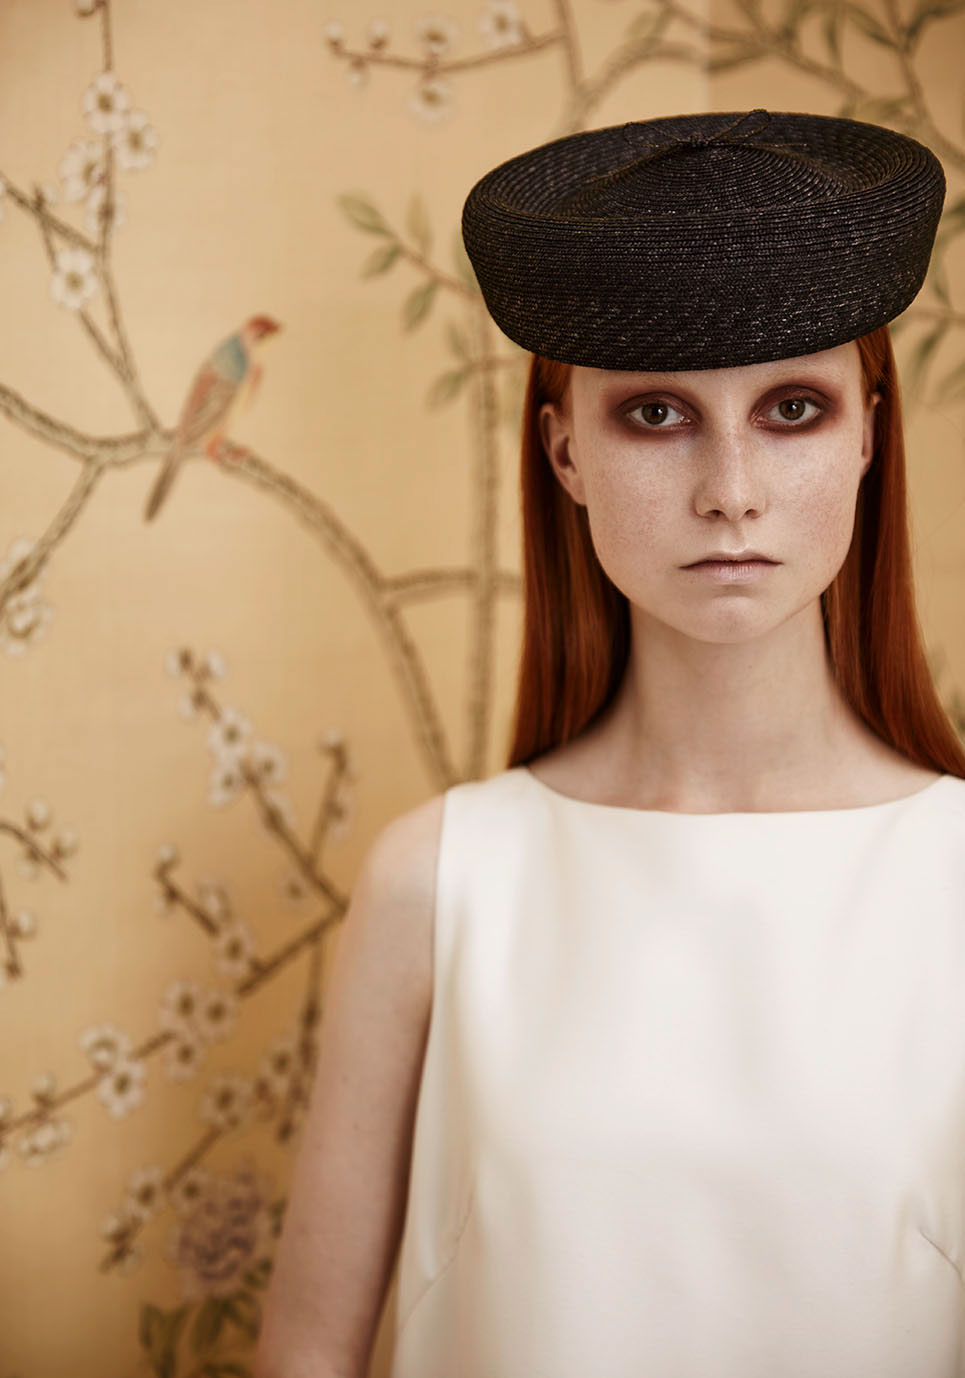 Lock Hatters - Prudence Look Book / фото Sandrine and Michael